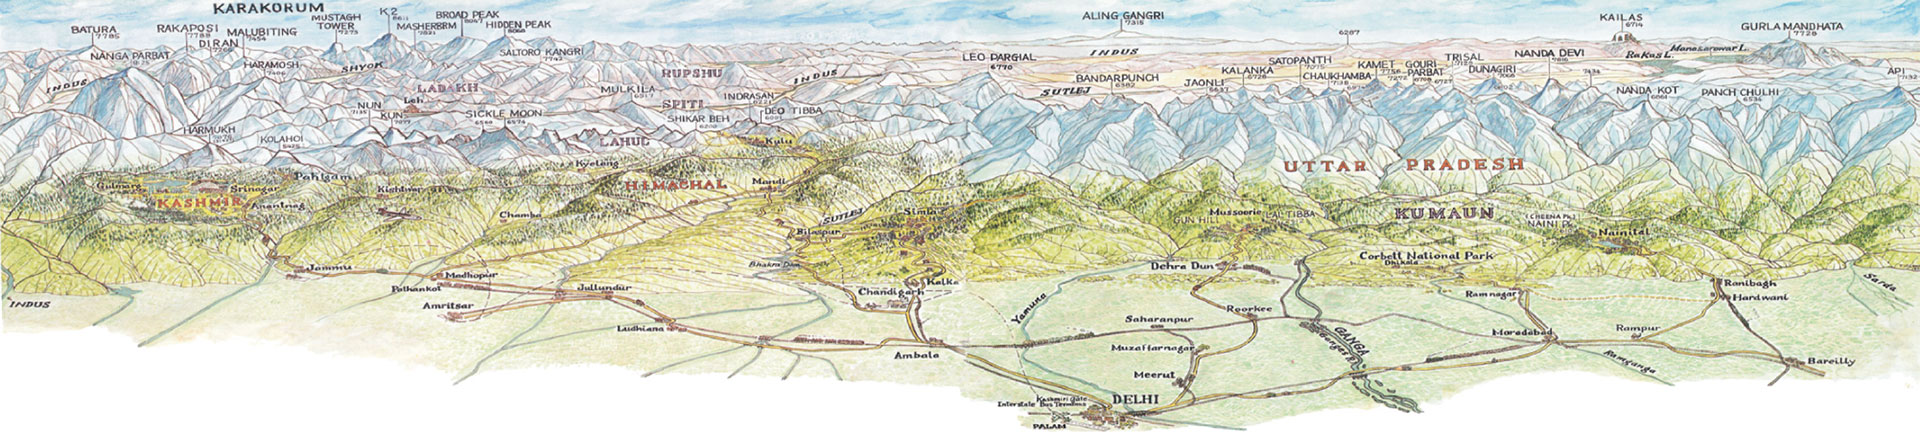 Map of Himalaya